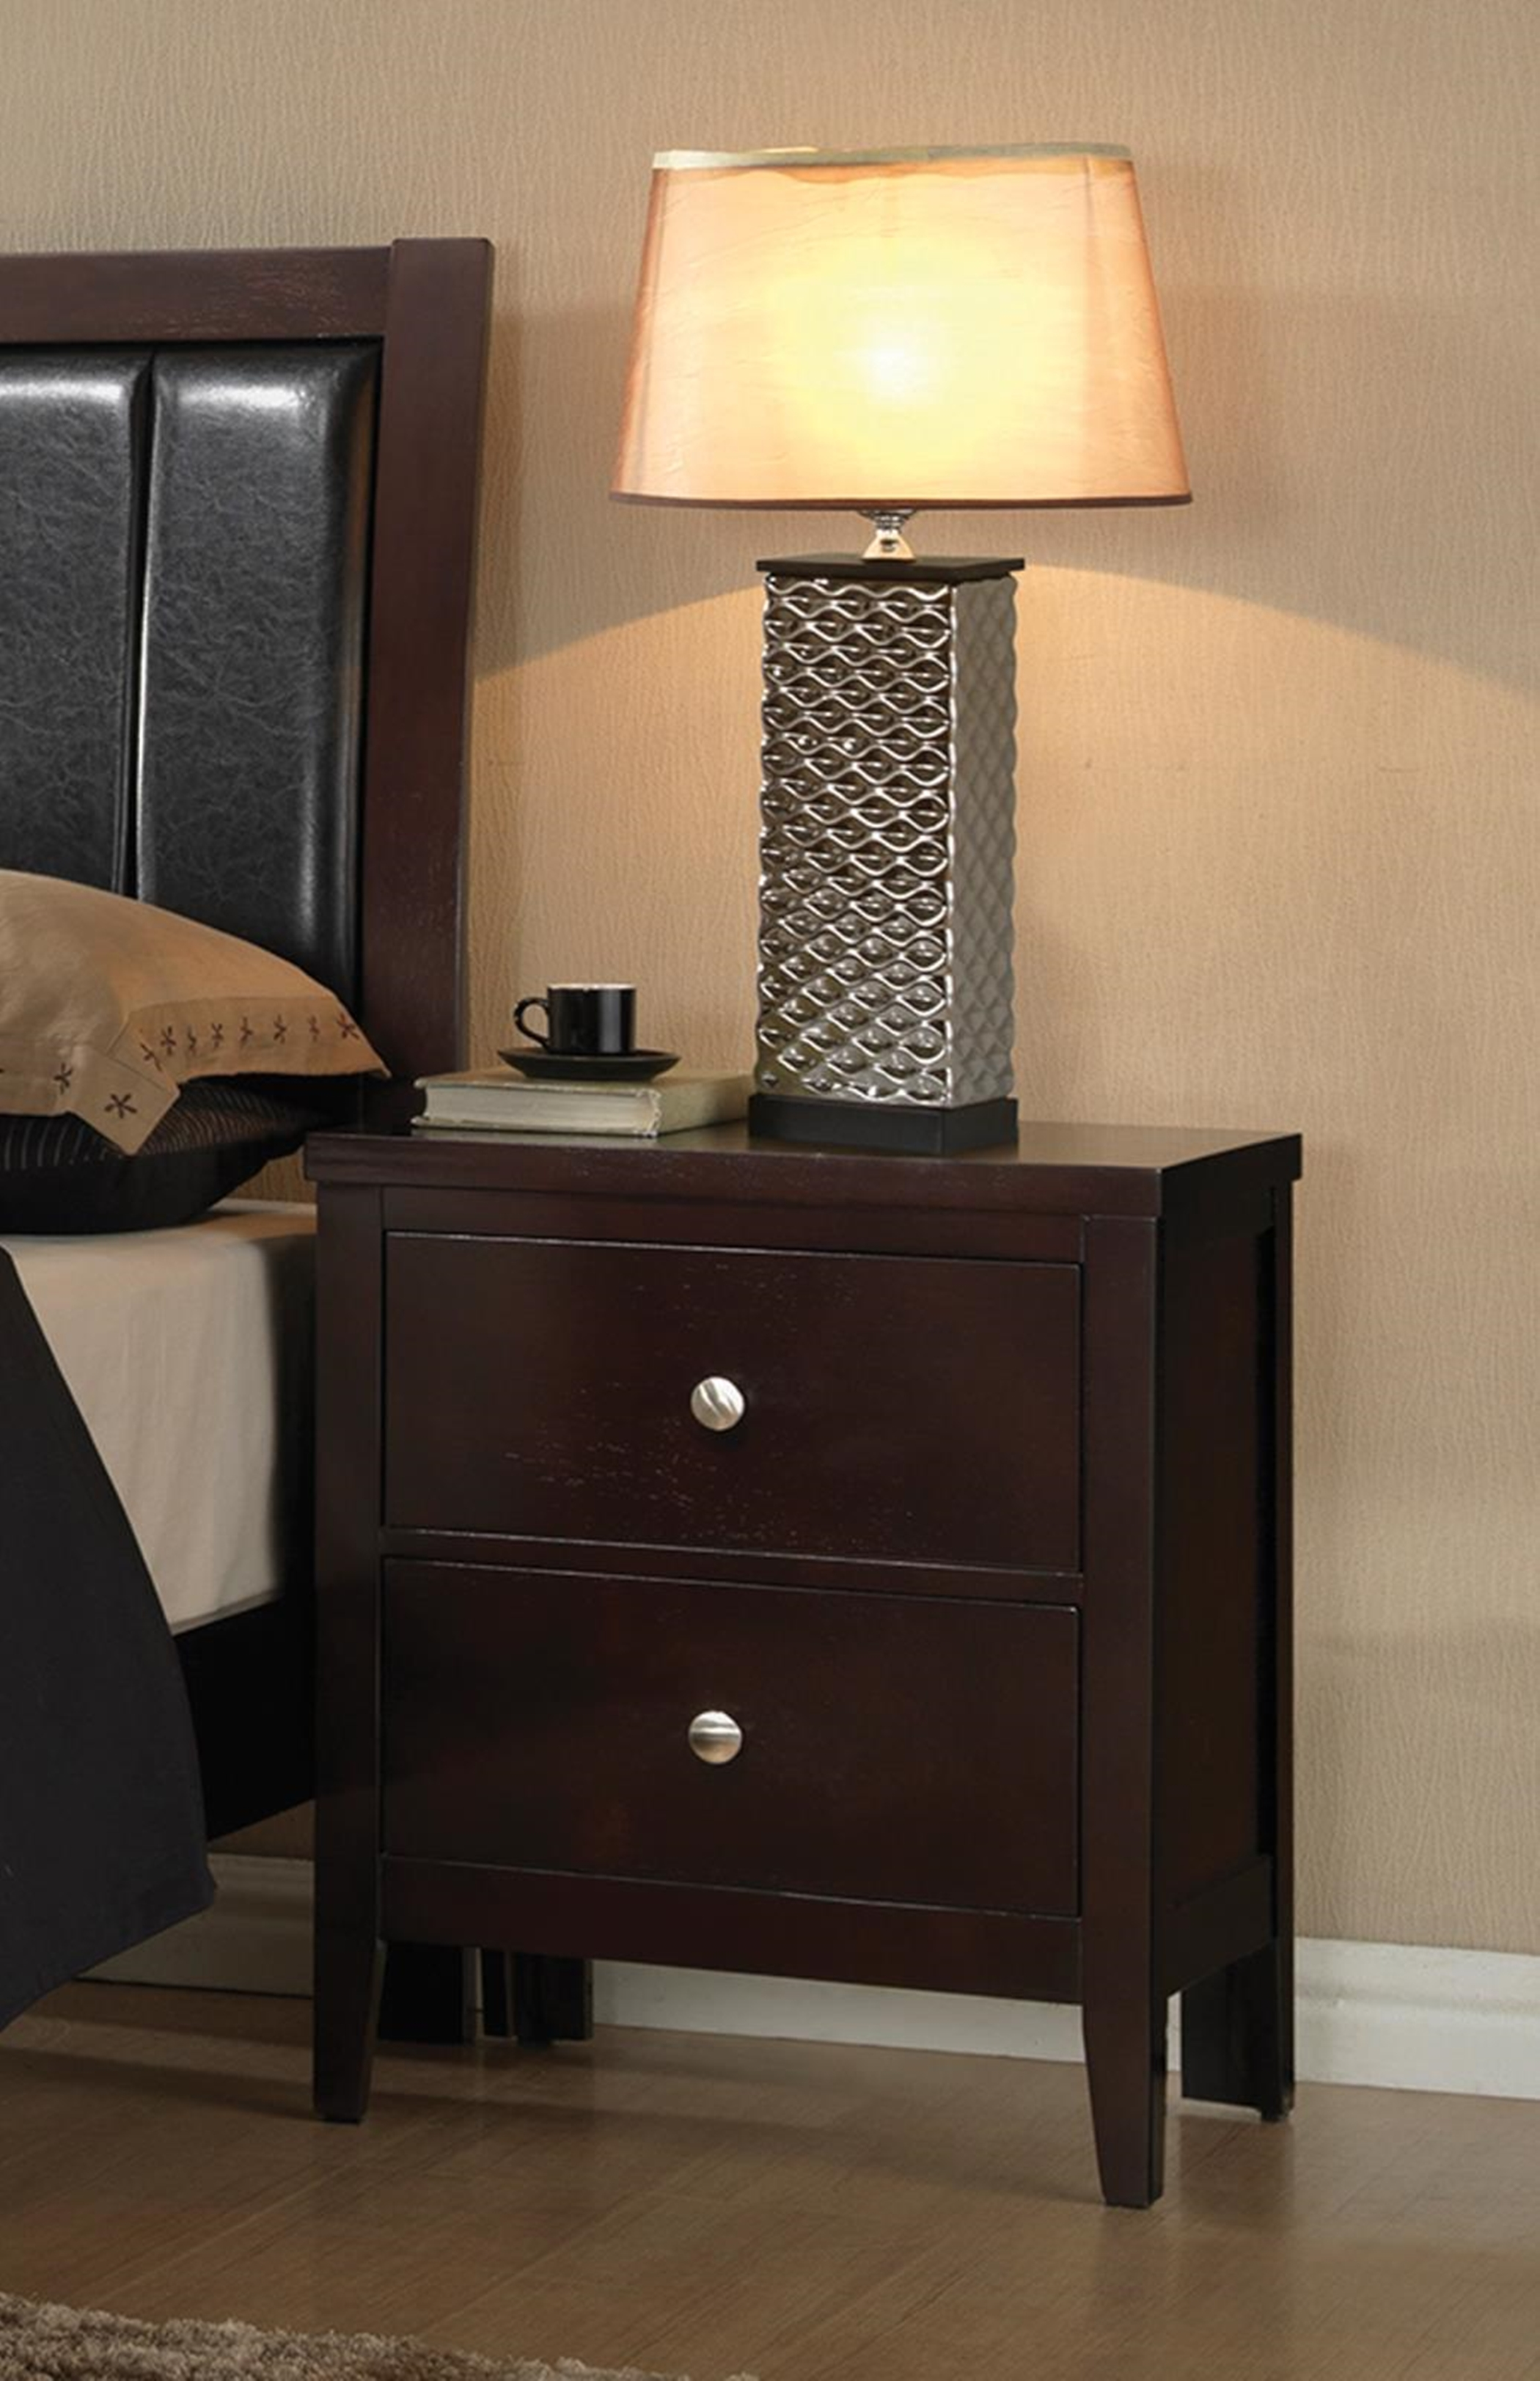 Carlton Capp. Two-Drawer Nightstand